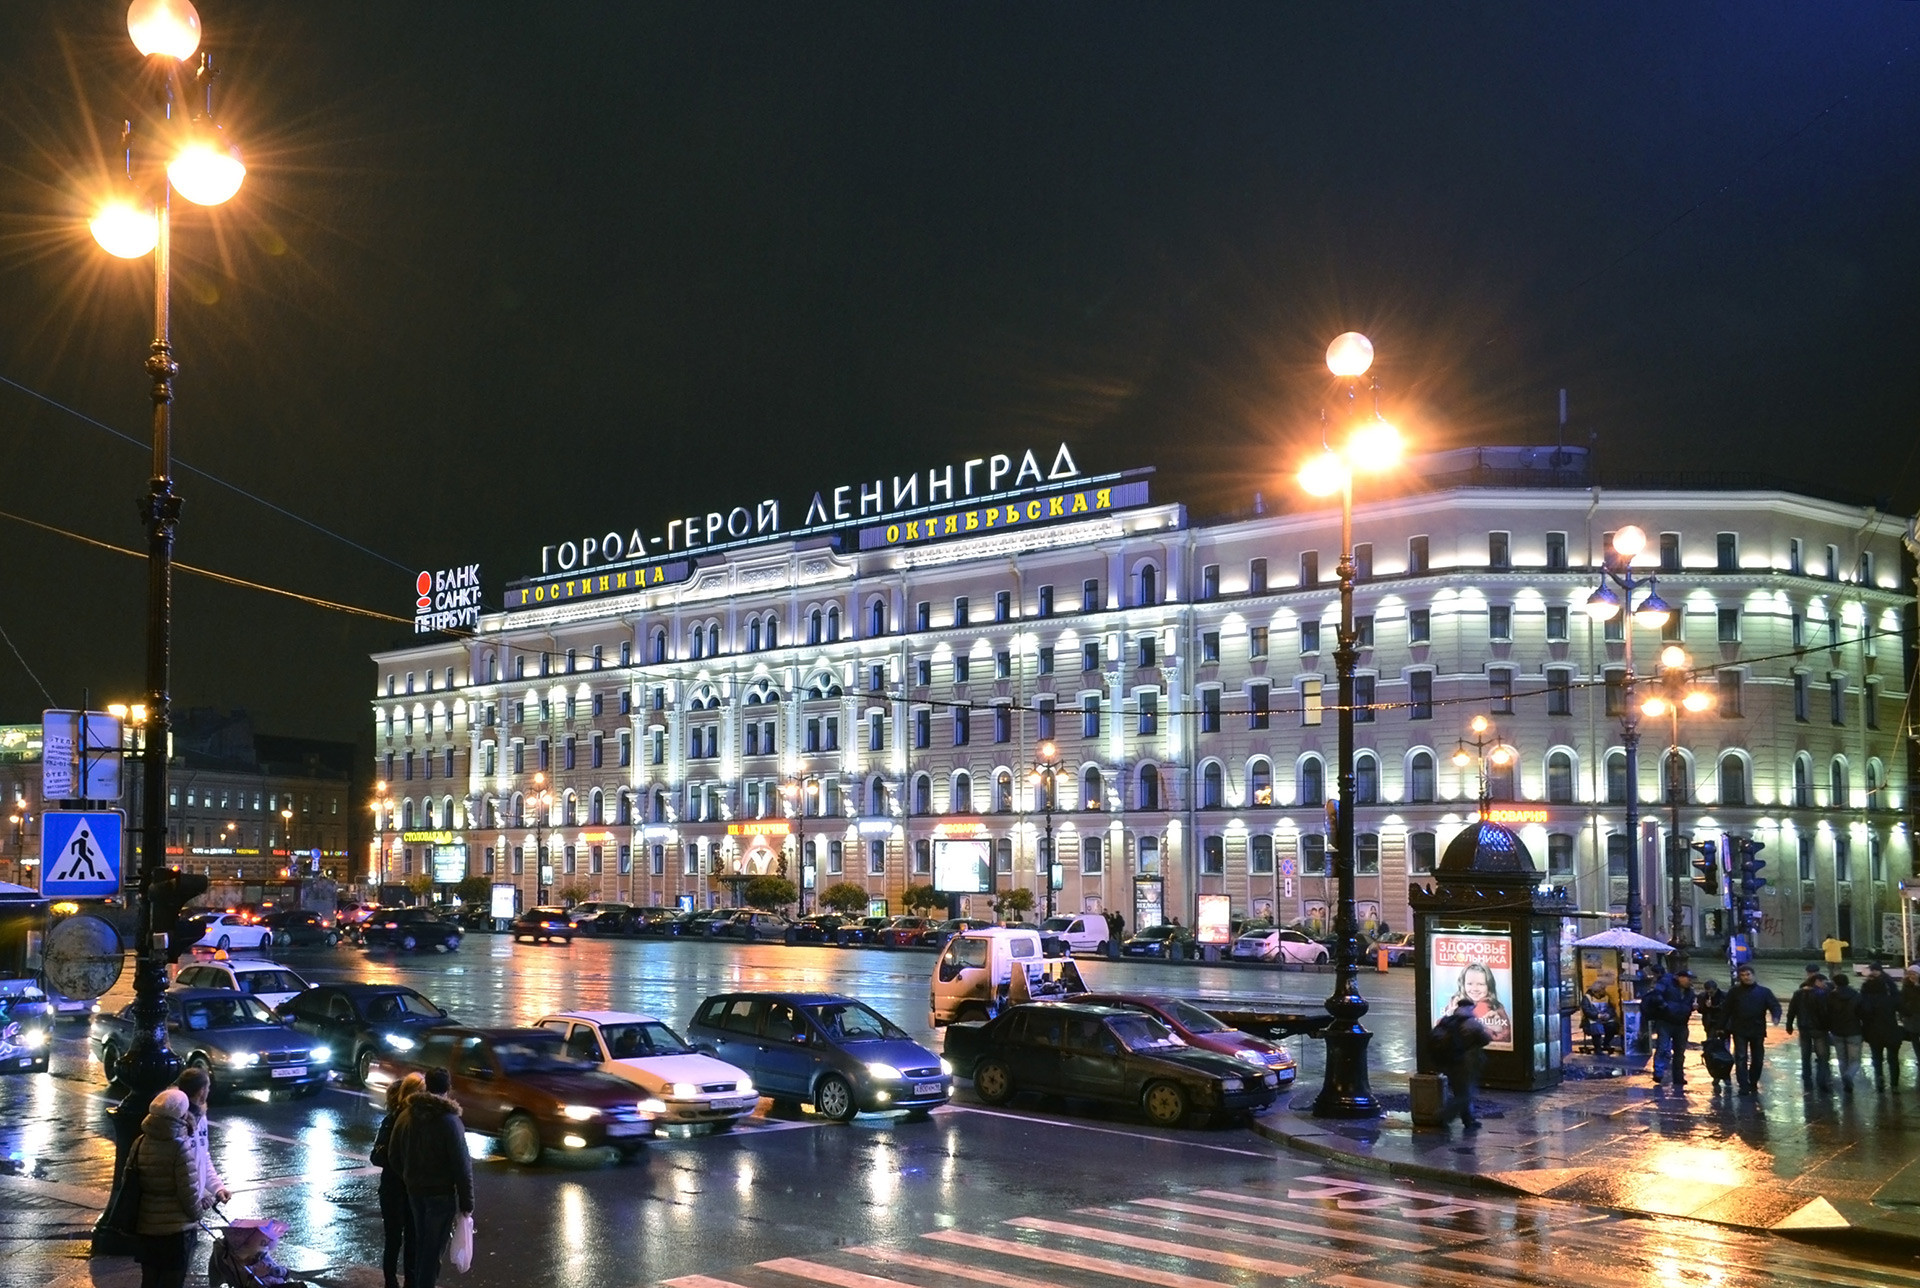 Oktyabrskaya hotel in St. Petersburg. The sign tells